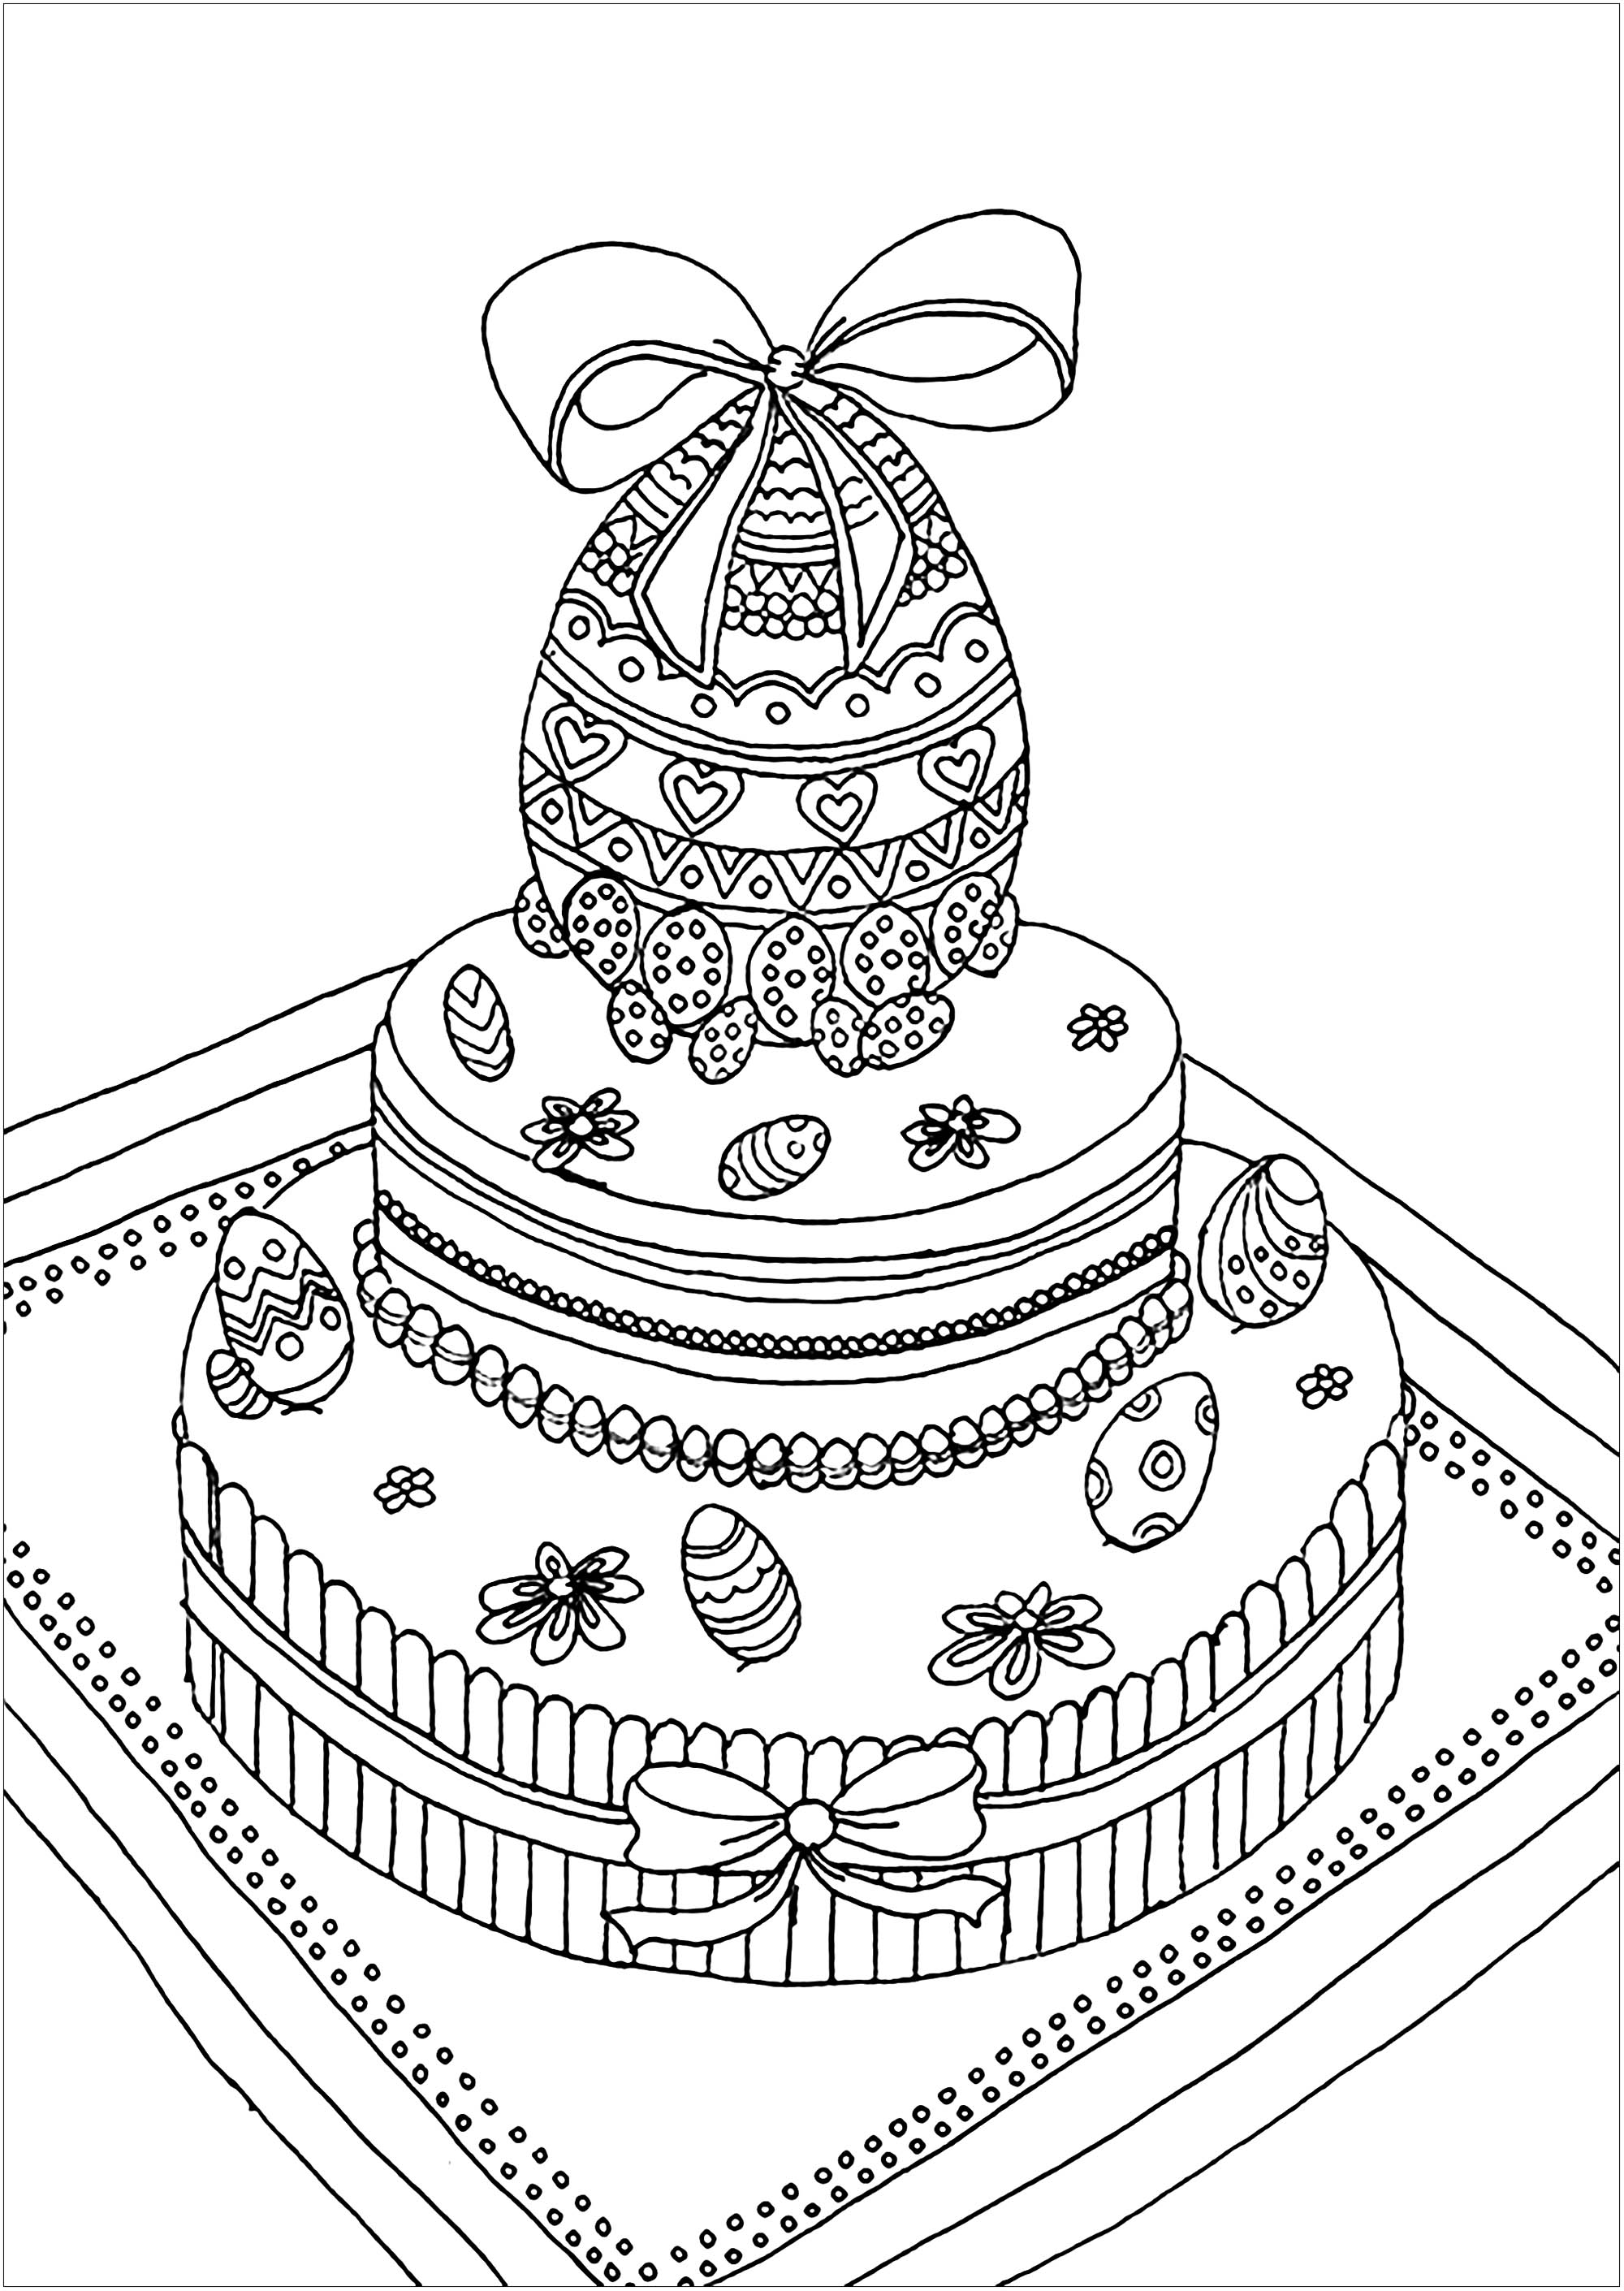 Incredible easter egg at the top of a cake, looking delicious